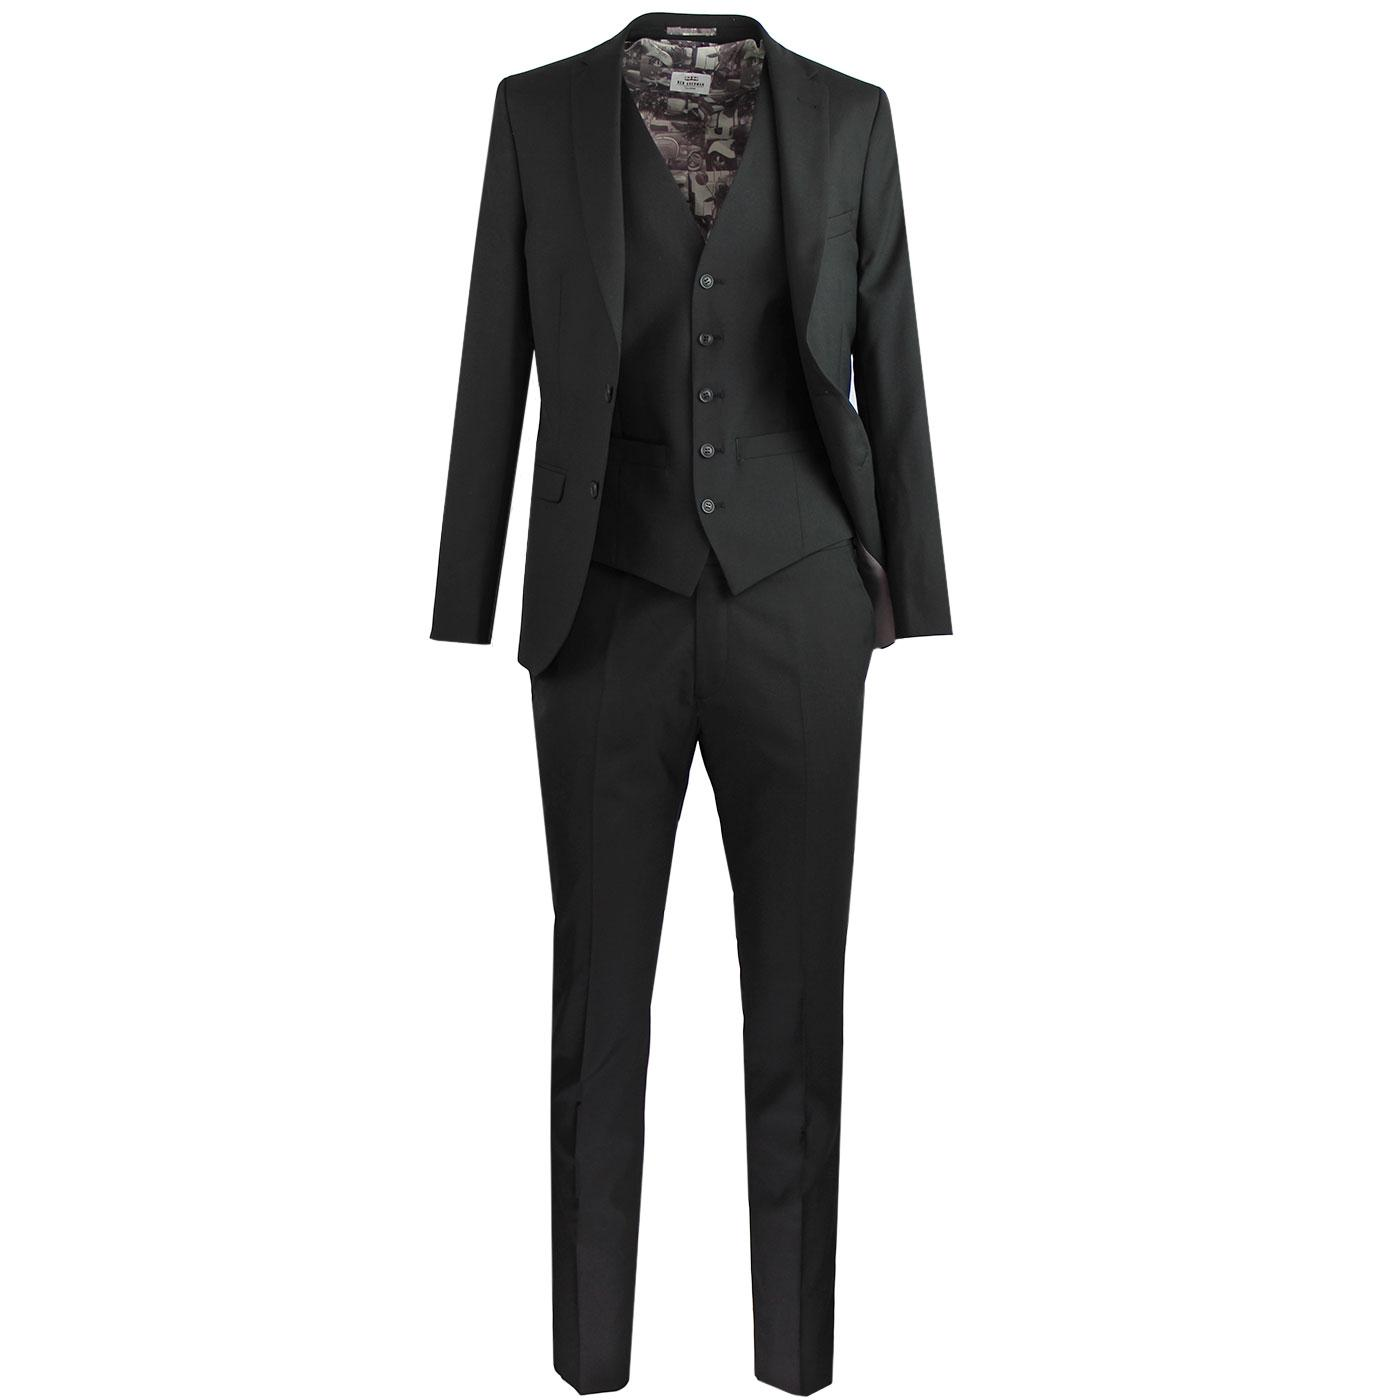 BEN SHERMAN Retro Mod Tonic Scooter Suit in Black